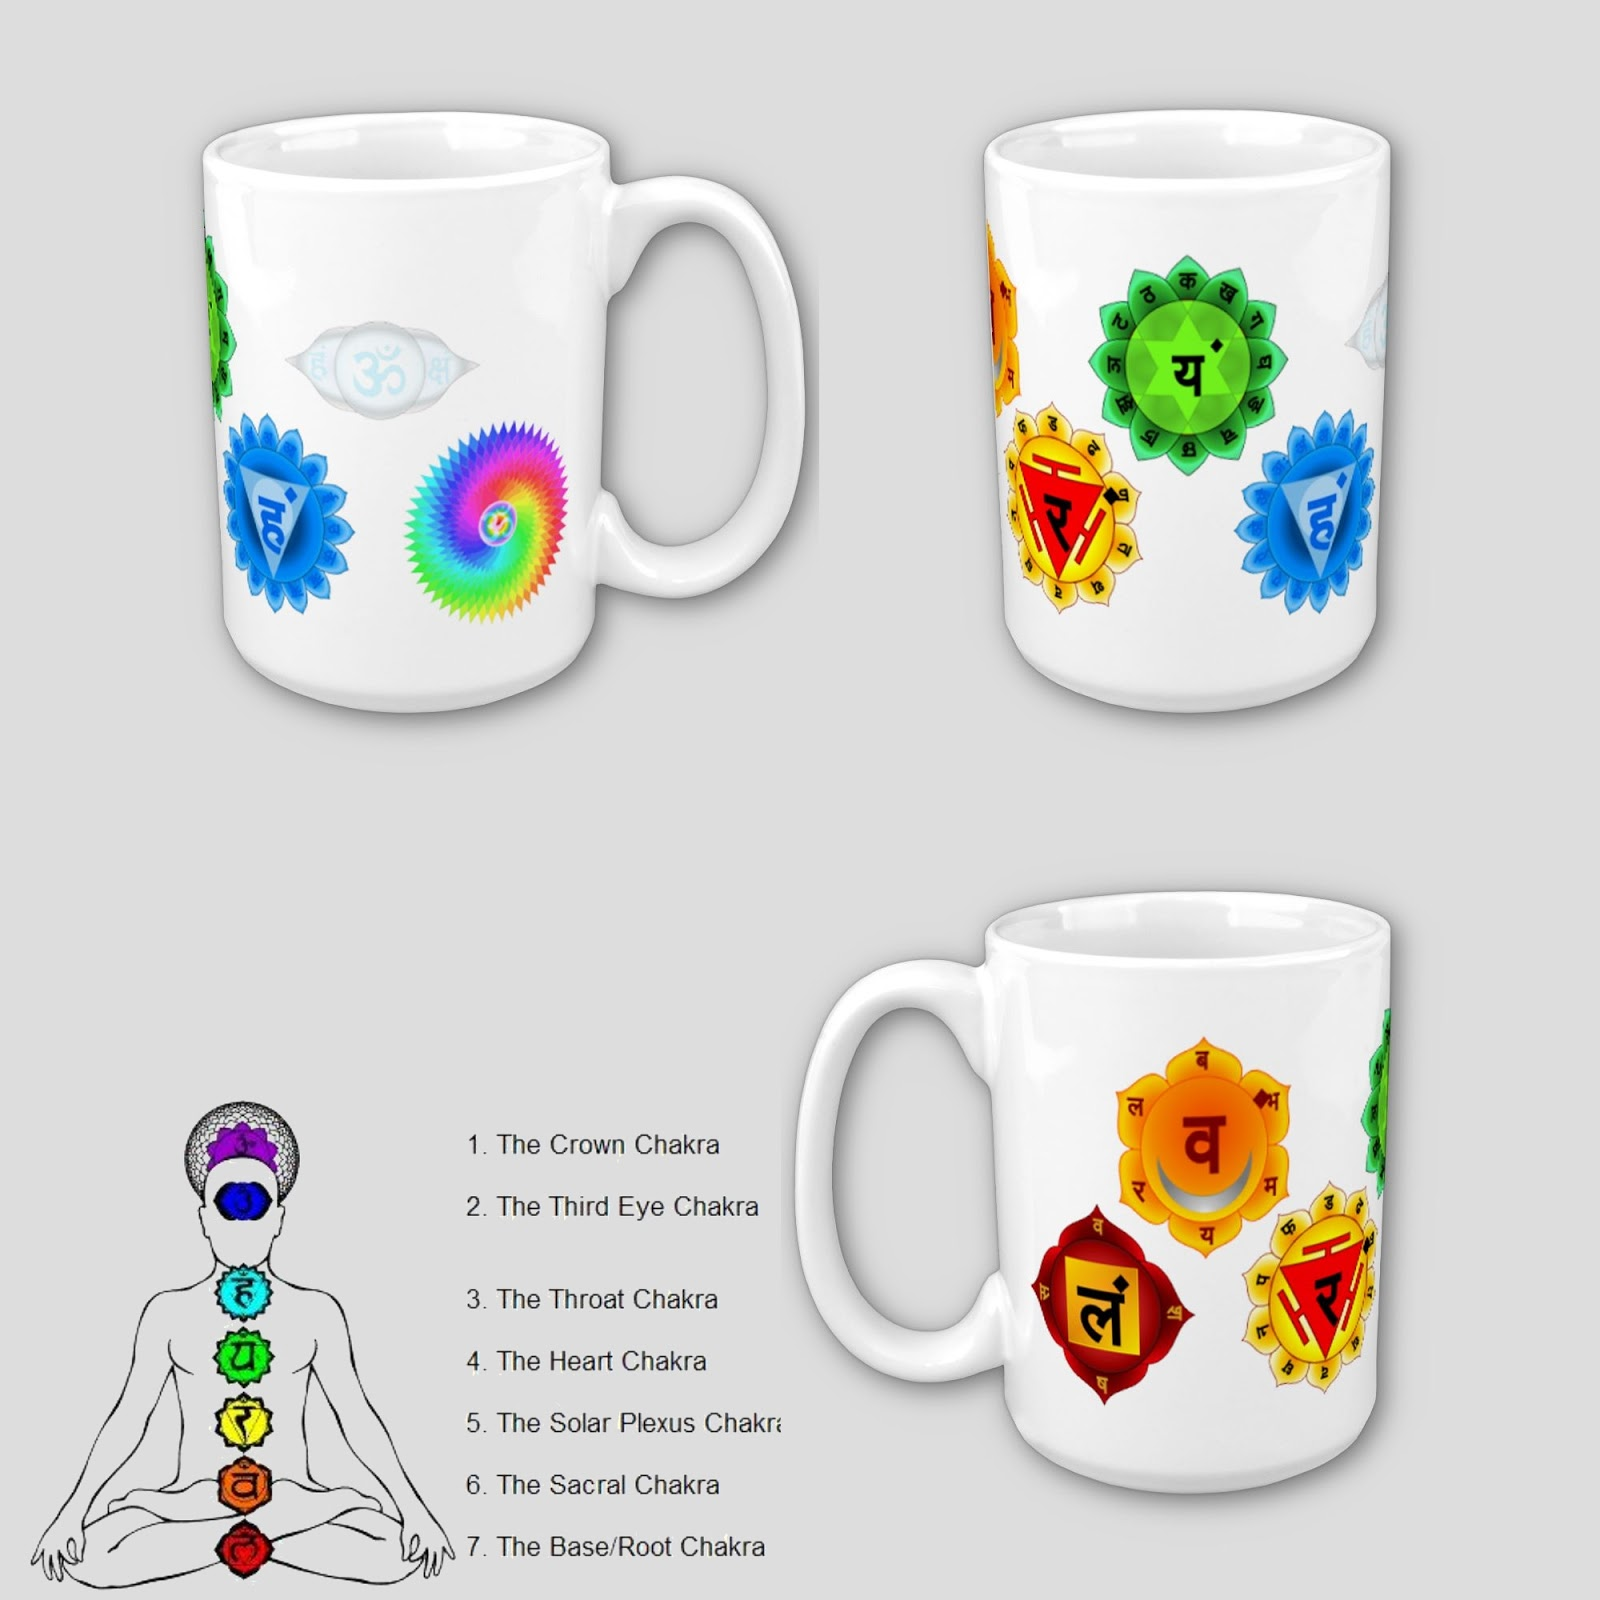 Yoga reiki seven chakra symbols art chart poster yoga reiki white glass coffee mug with all main yoga reiki seven chakra symbols printed on in full detail in the visible light spectrum order using the representing biocorpaavc